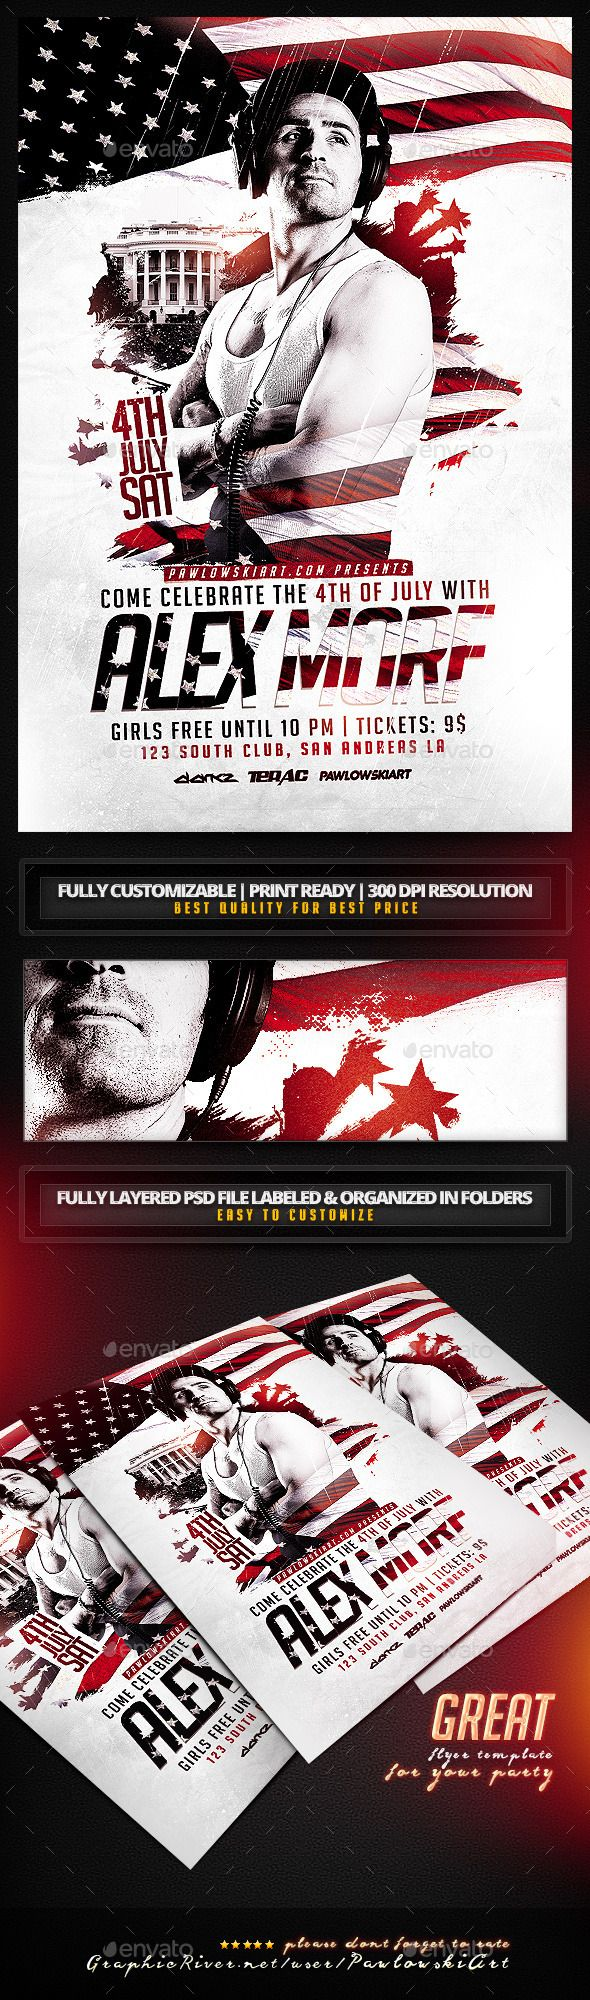 best ideas about flyer design templates flyer 4th of special guest party flyer template